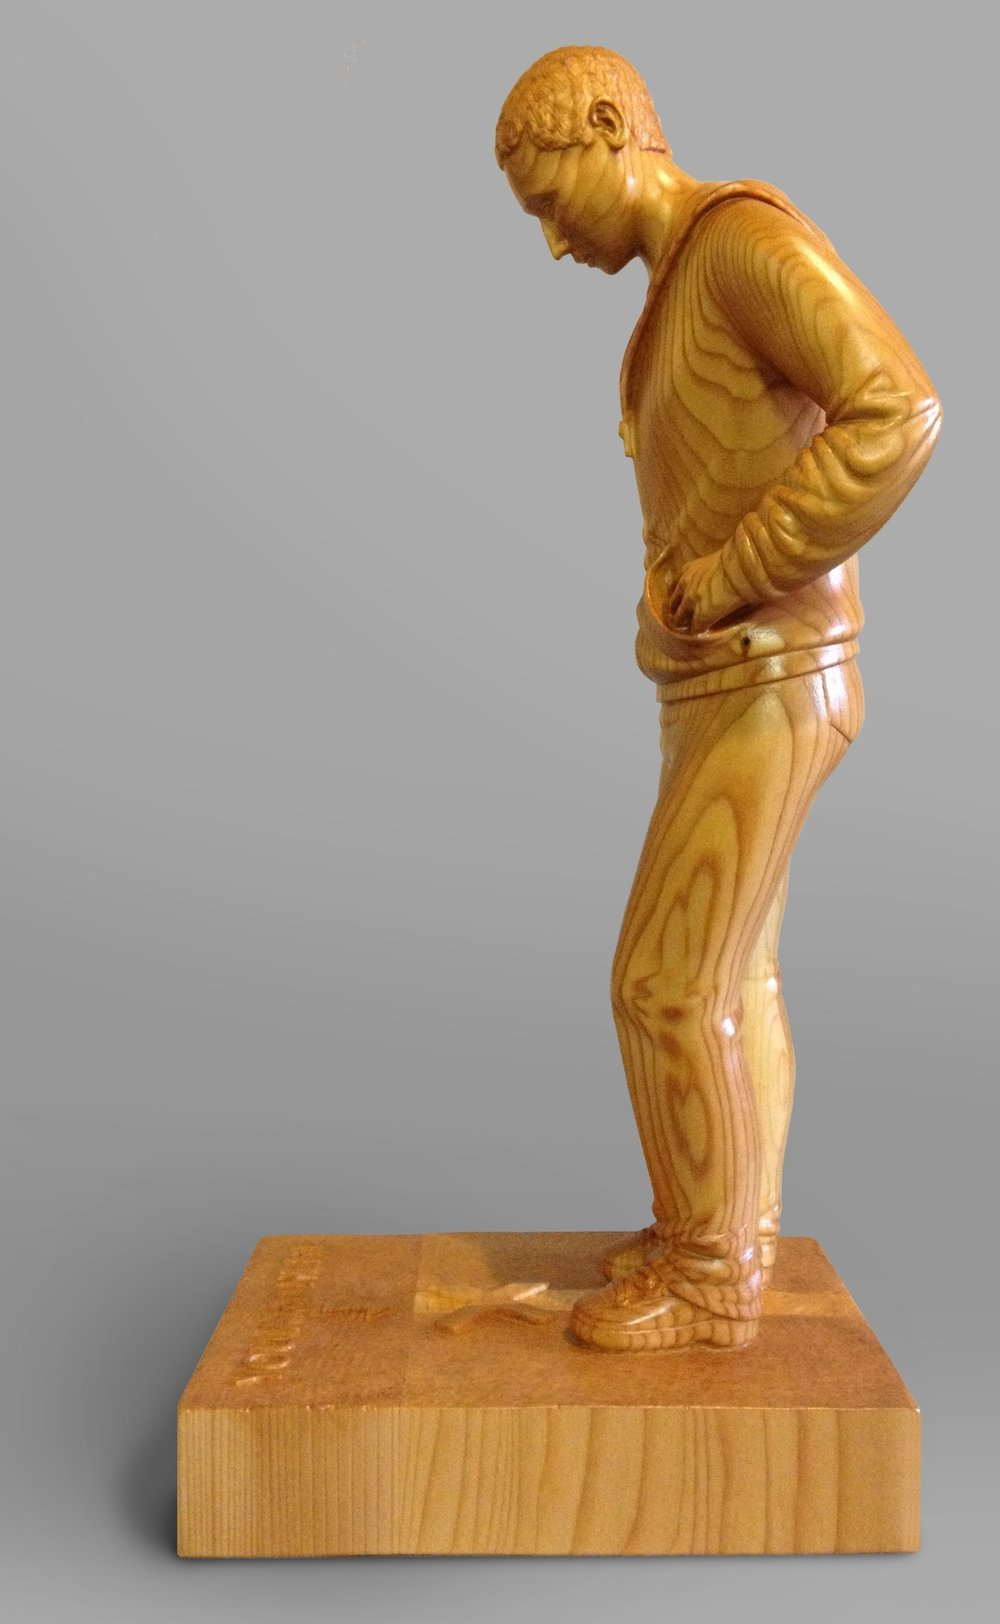 Left side of figure